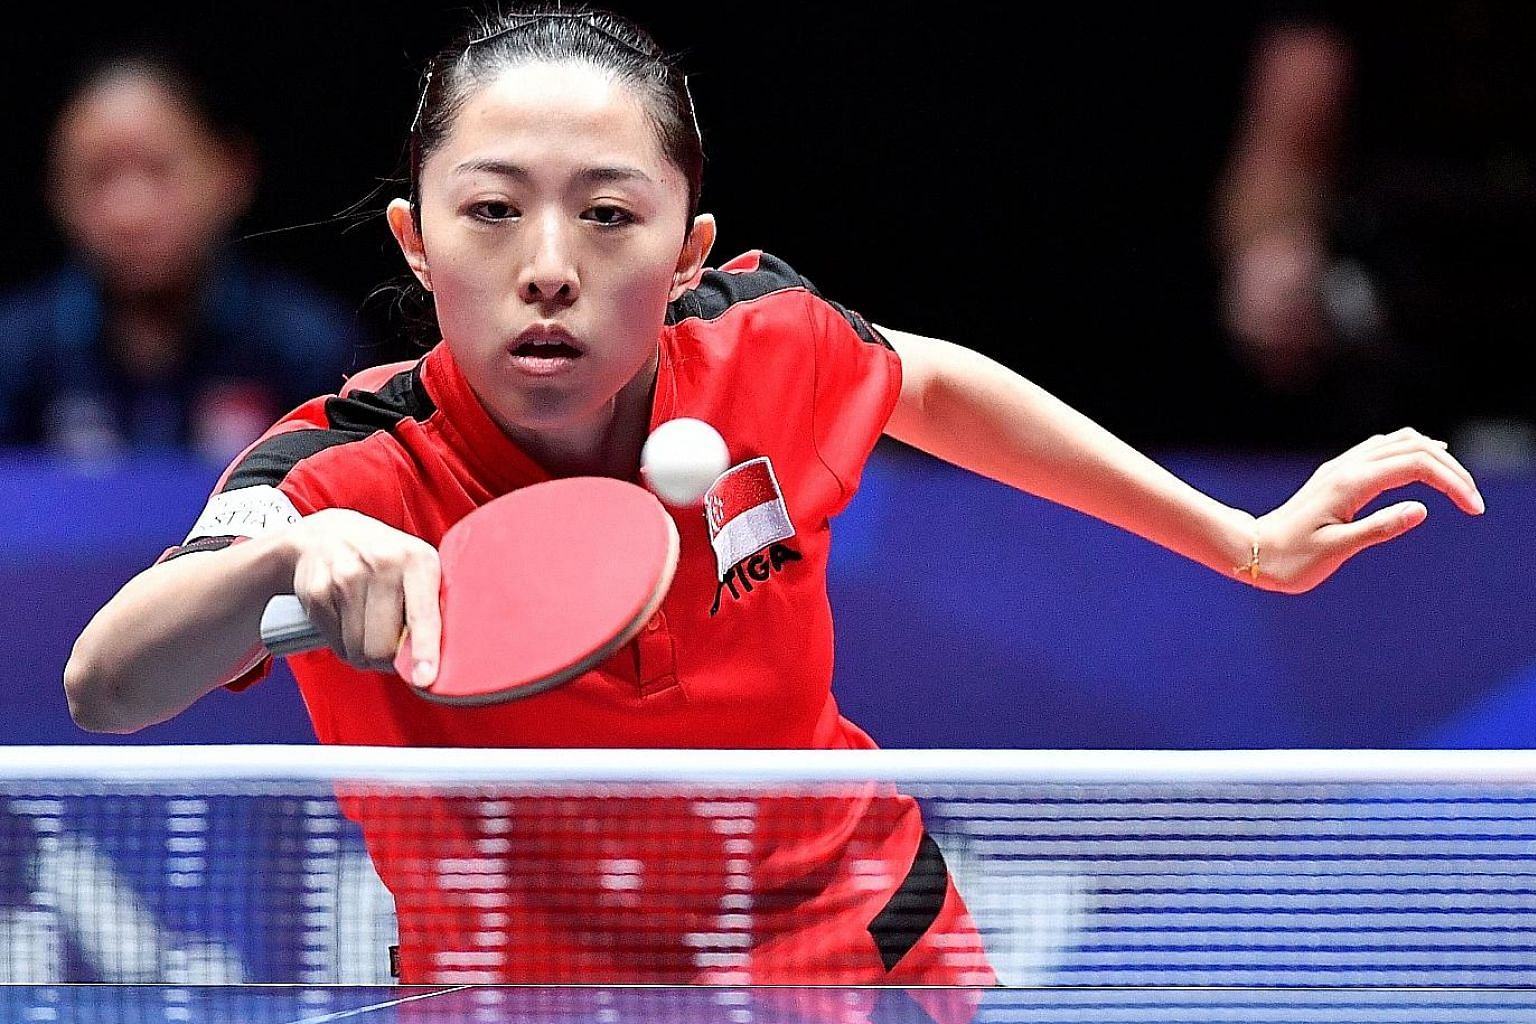 National paddler Yu Mengyu returning a shot against Ukraine's defensive specialist Ganna Gaponova yesterday. She carried a shoulder injury into the Halmstad Arena in Sweden and lost both her matches in the last-16 tie.